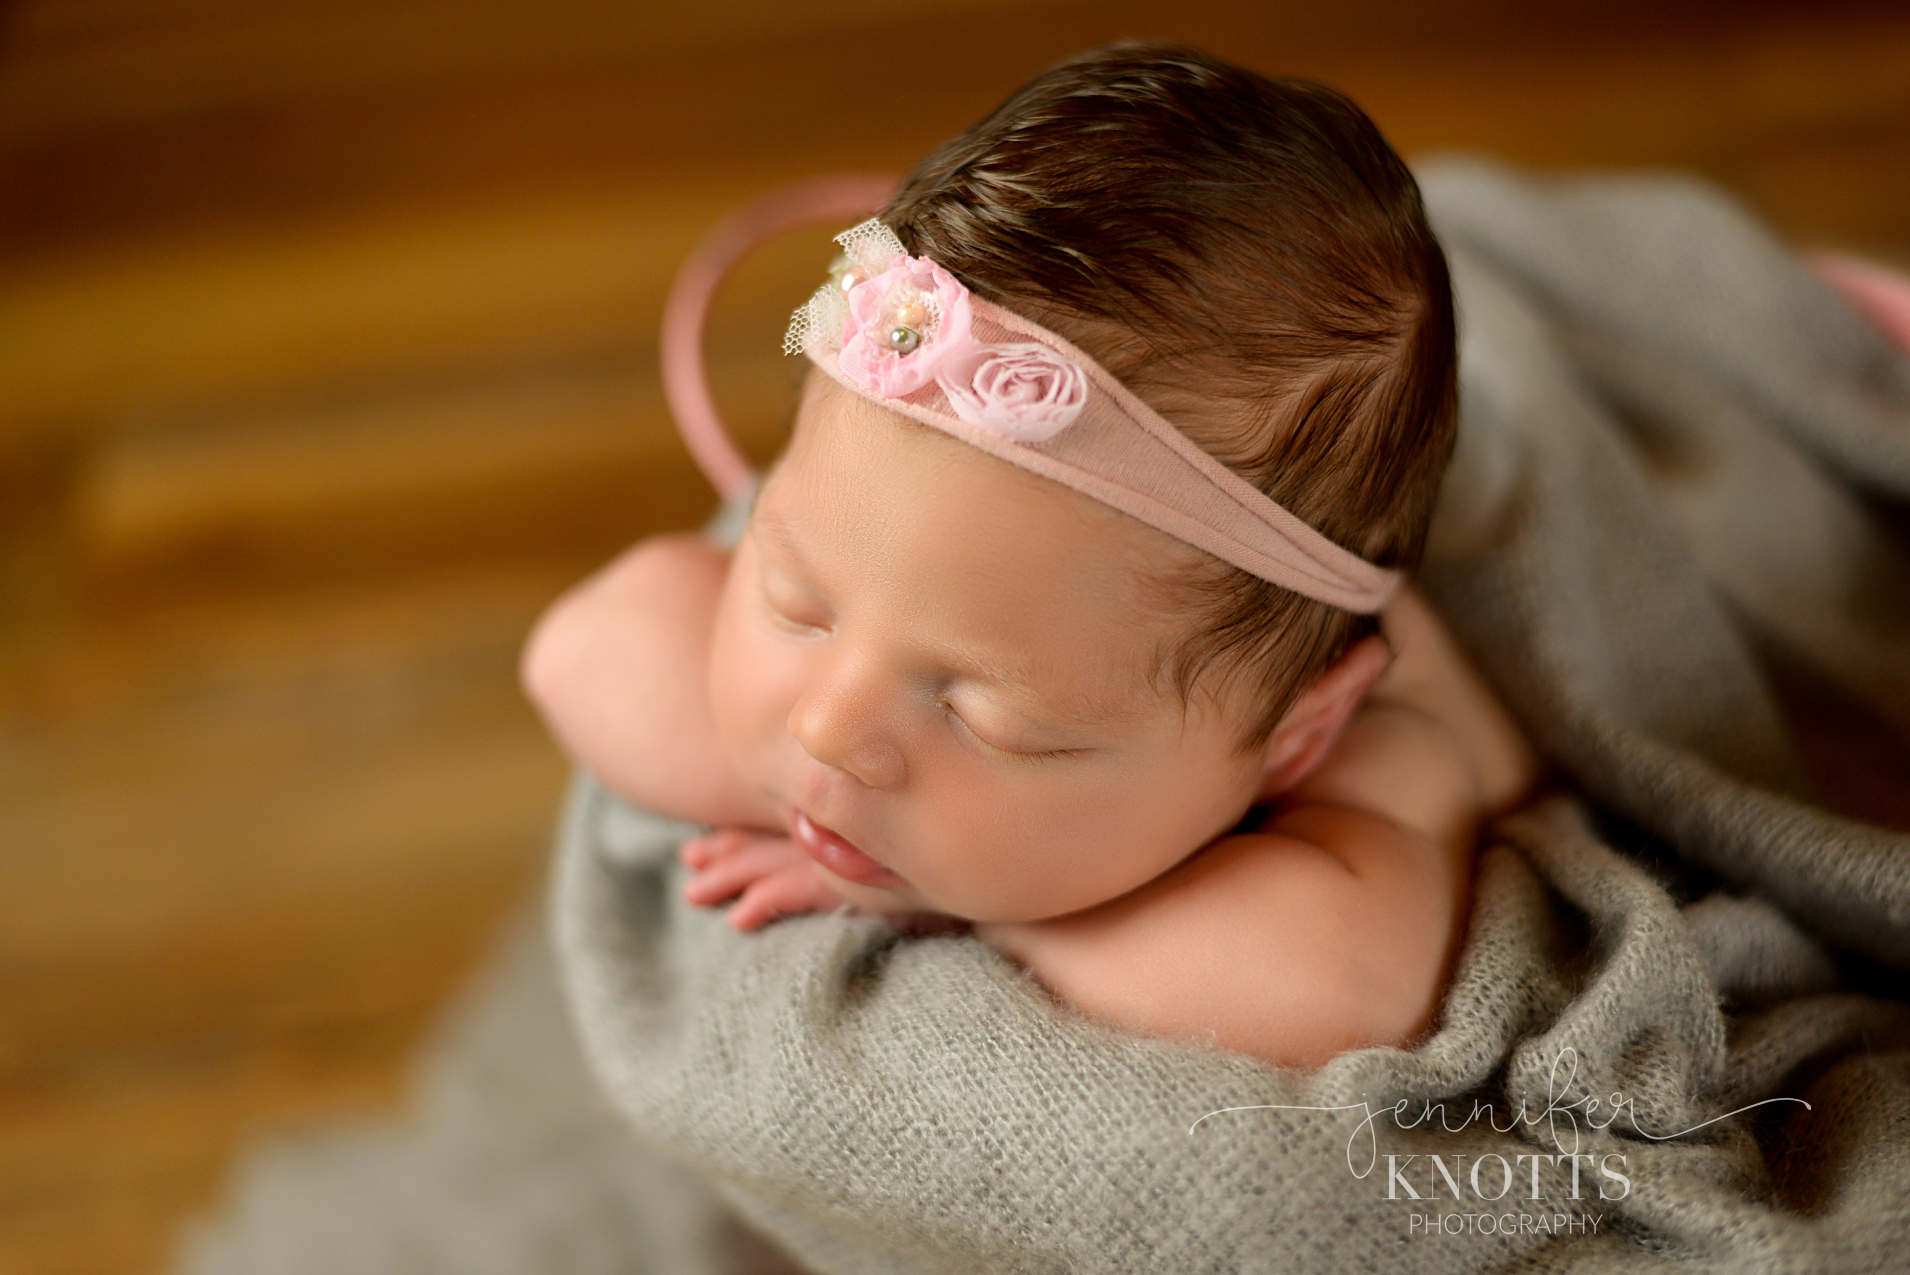 baby girl rests in bucket surrounded by gray fabric during Wilmington newborn session